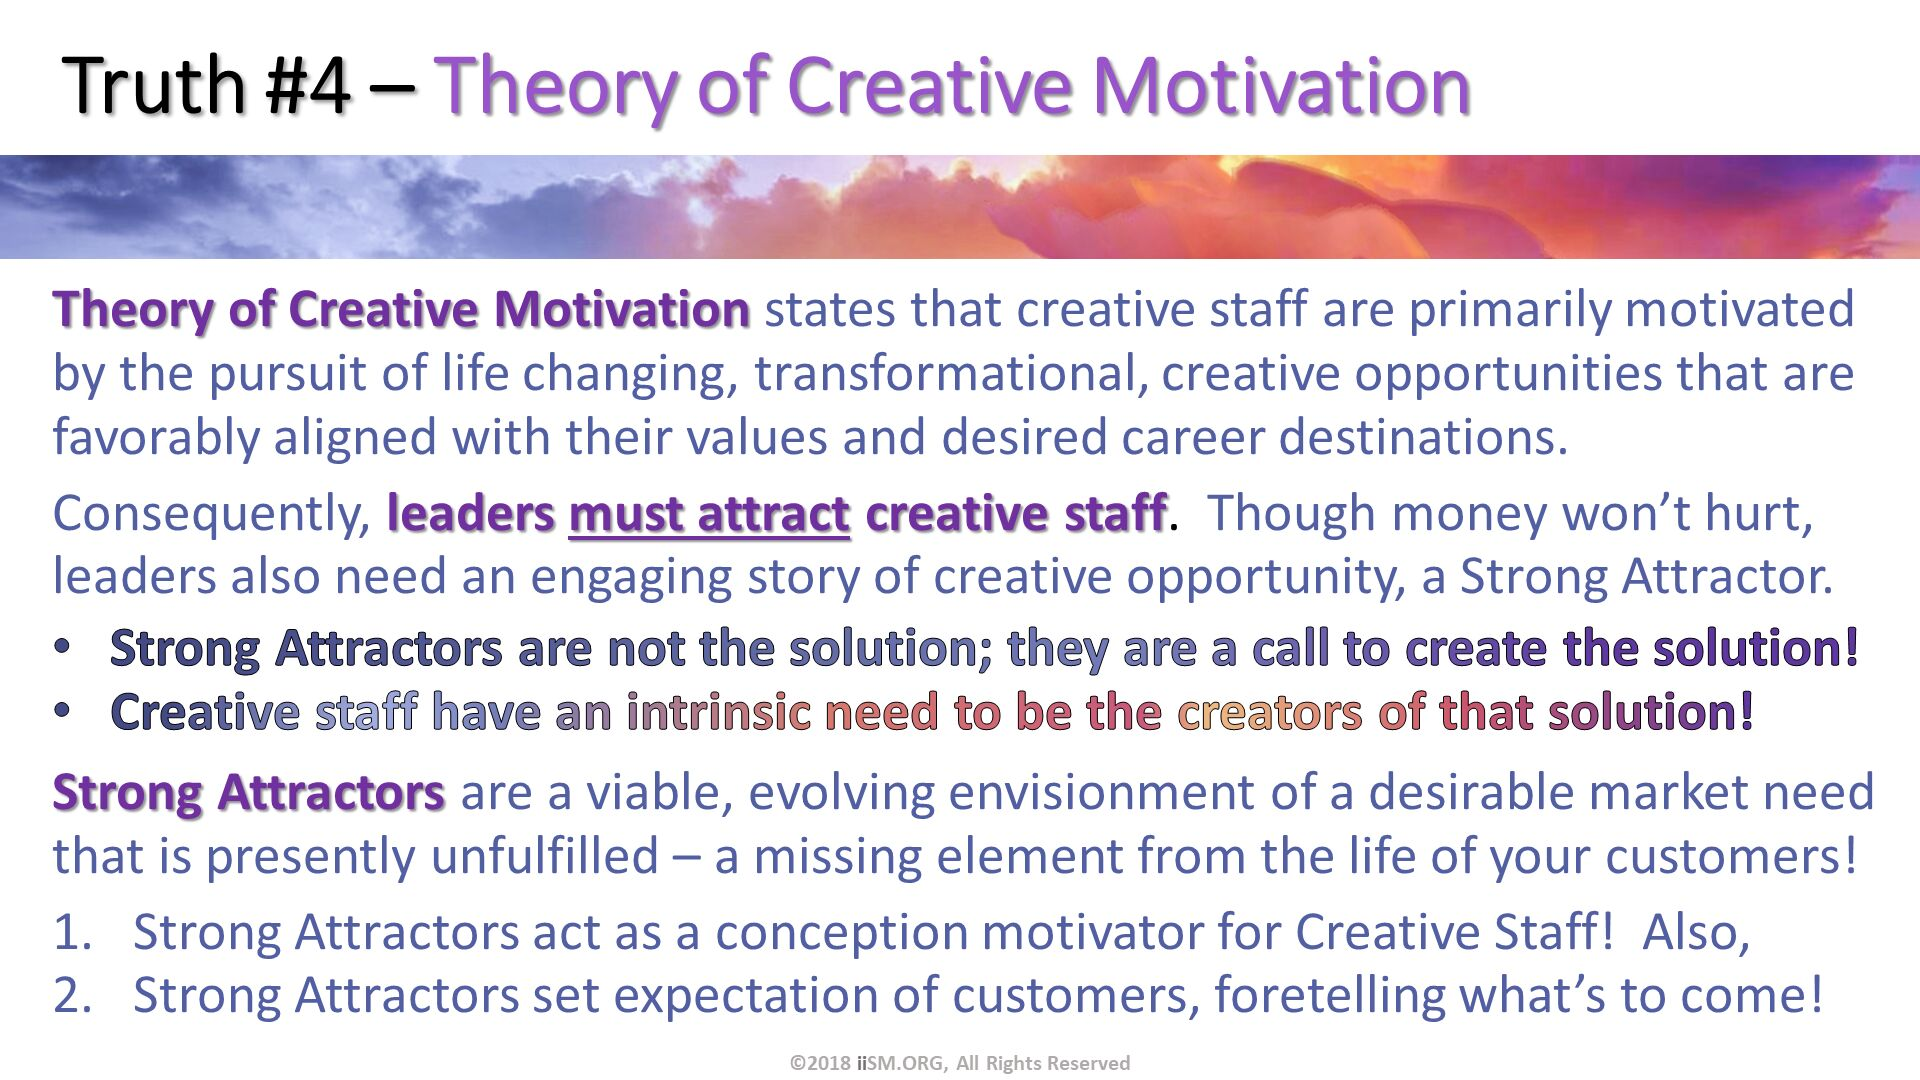 Truth #4 – Theory of Creative Motivation. Theory of Creative Motivation states that creative staff are primarily motivated by the pursuit of life changing, transformational, creative opportunities that are favorably aligned with their values and desired career destinations. Consequently, leaders must attract creative staff.  Though money won't hurt, leaders also need an engaging story of creative opportunity, a Strong Attractor. Strong Attractors are not the solution; they are a call to create the solution! Creative staff have an intrinsic need to be the creators of that solution! Strong Attractors are a viable, evolving envisionment of a desirable market need that is presently unfulfilled – a missing element from the life of your customers! Strong Attractors act as a conception motivator for Creative Staff!  Also, Strong Attractors set expectation of customers, foretelling what's to come! . ©2018 iiSM.ORG, All Rights Reserved.